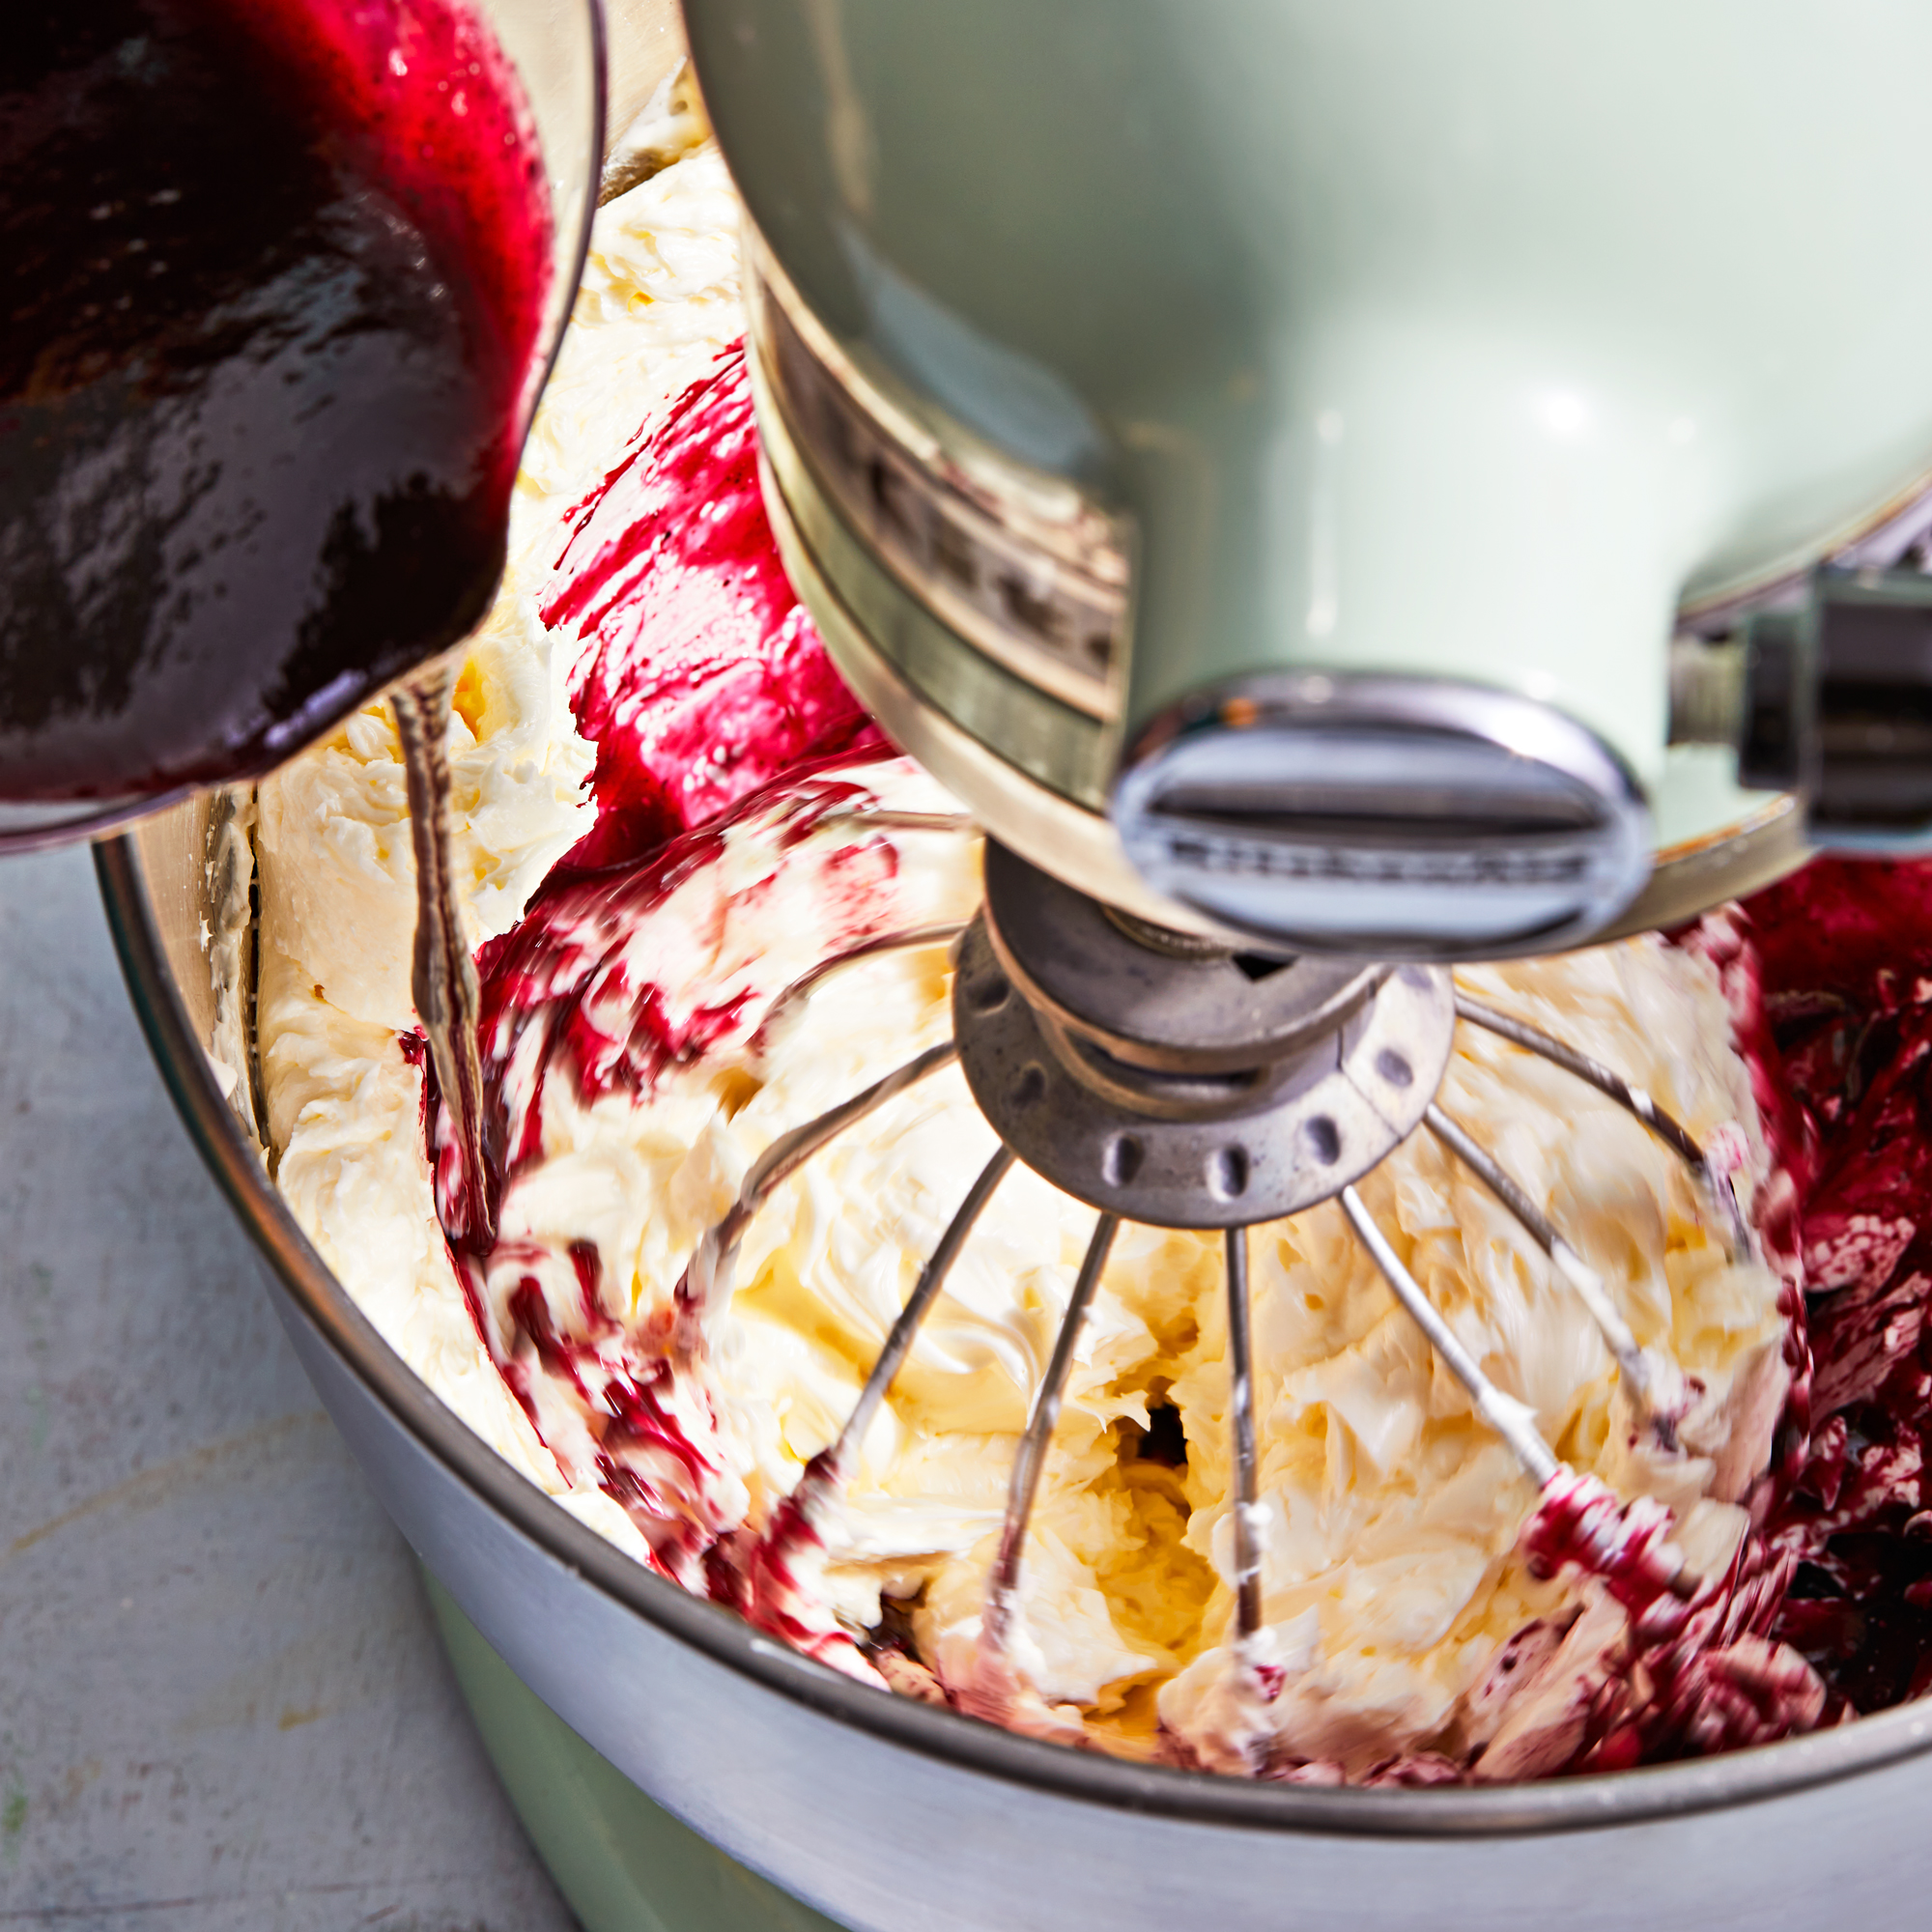 pouring jam into mixer with buttercream frosting